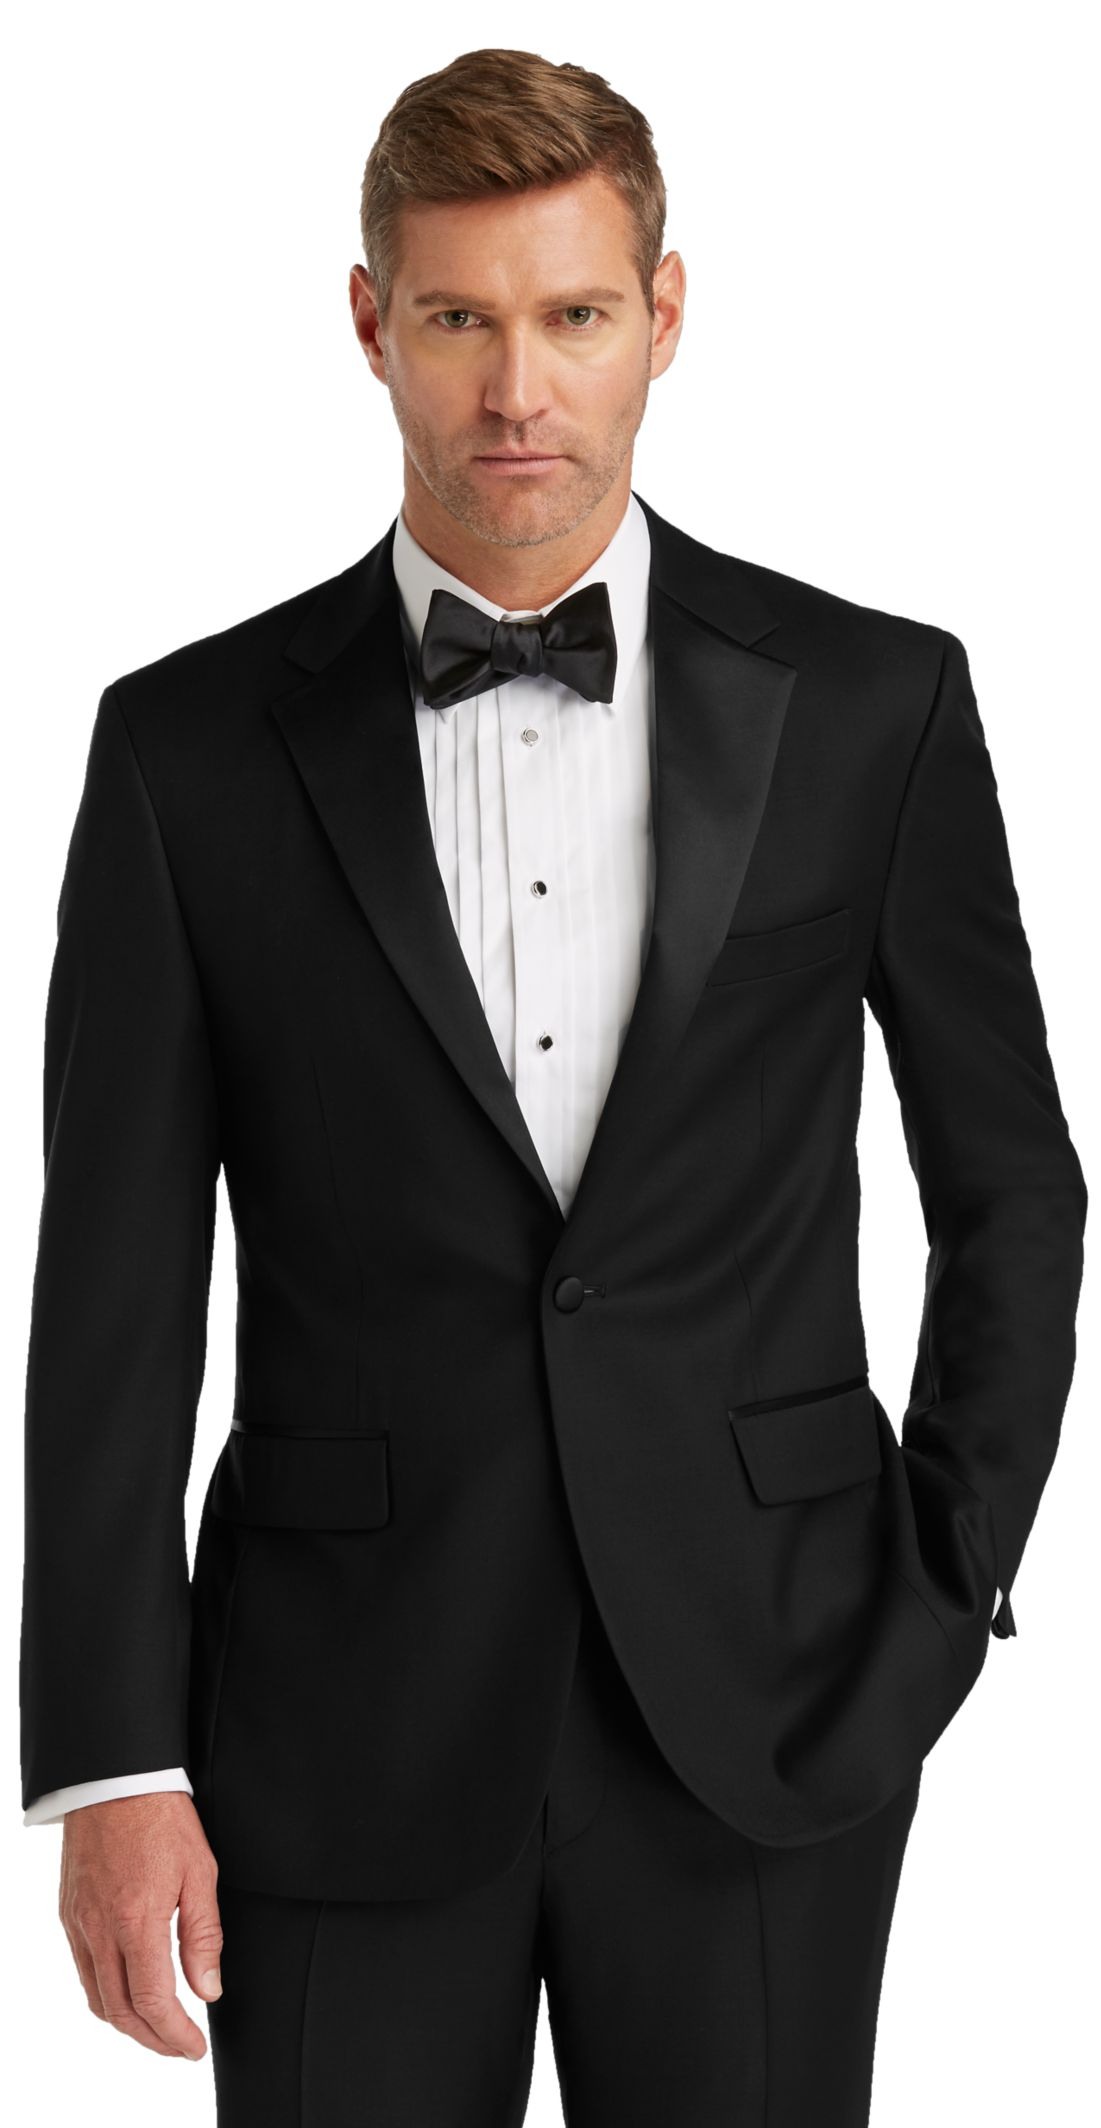 Tuxedos & Formalwear | Shop Men's Formal Suit Attire | JoS. A. Bank